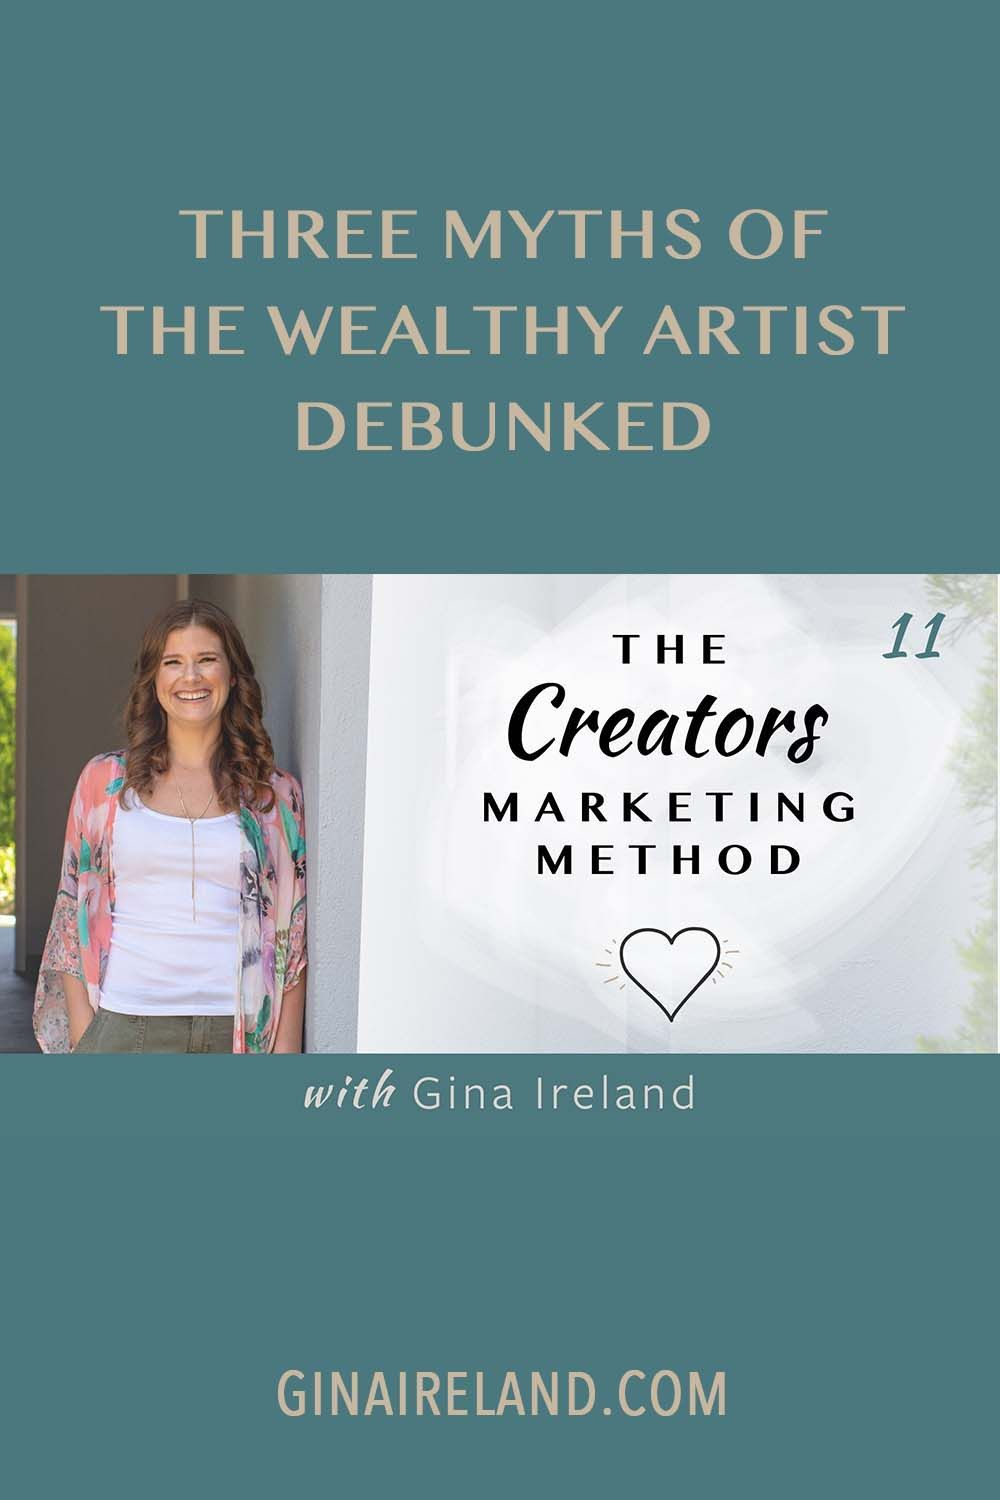 Do you have a creative business? Today I am going to talk about how to be a wealthy artist. Click here to listen to this podcast episode! #creativebusiness #creativeentrepreneur #artist #creativebusinesstips